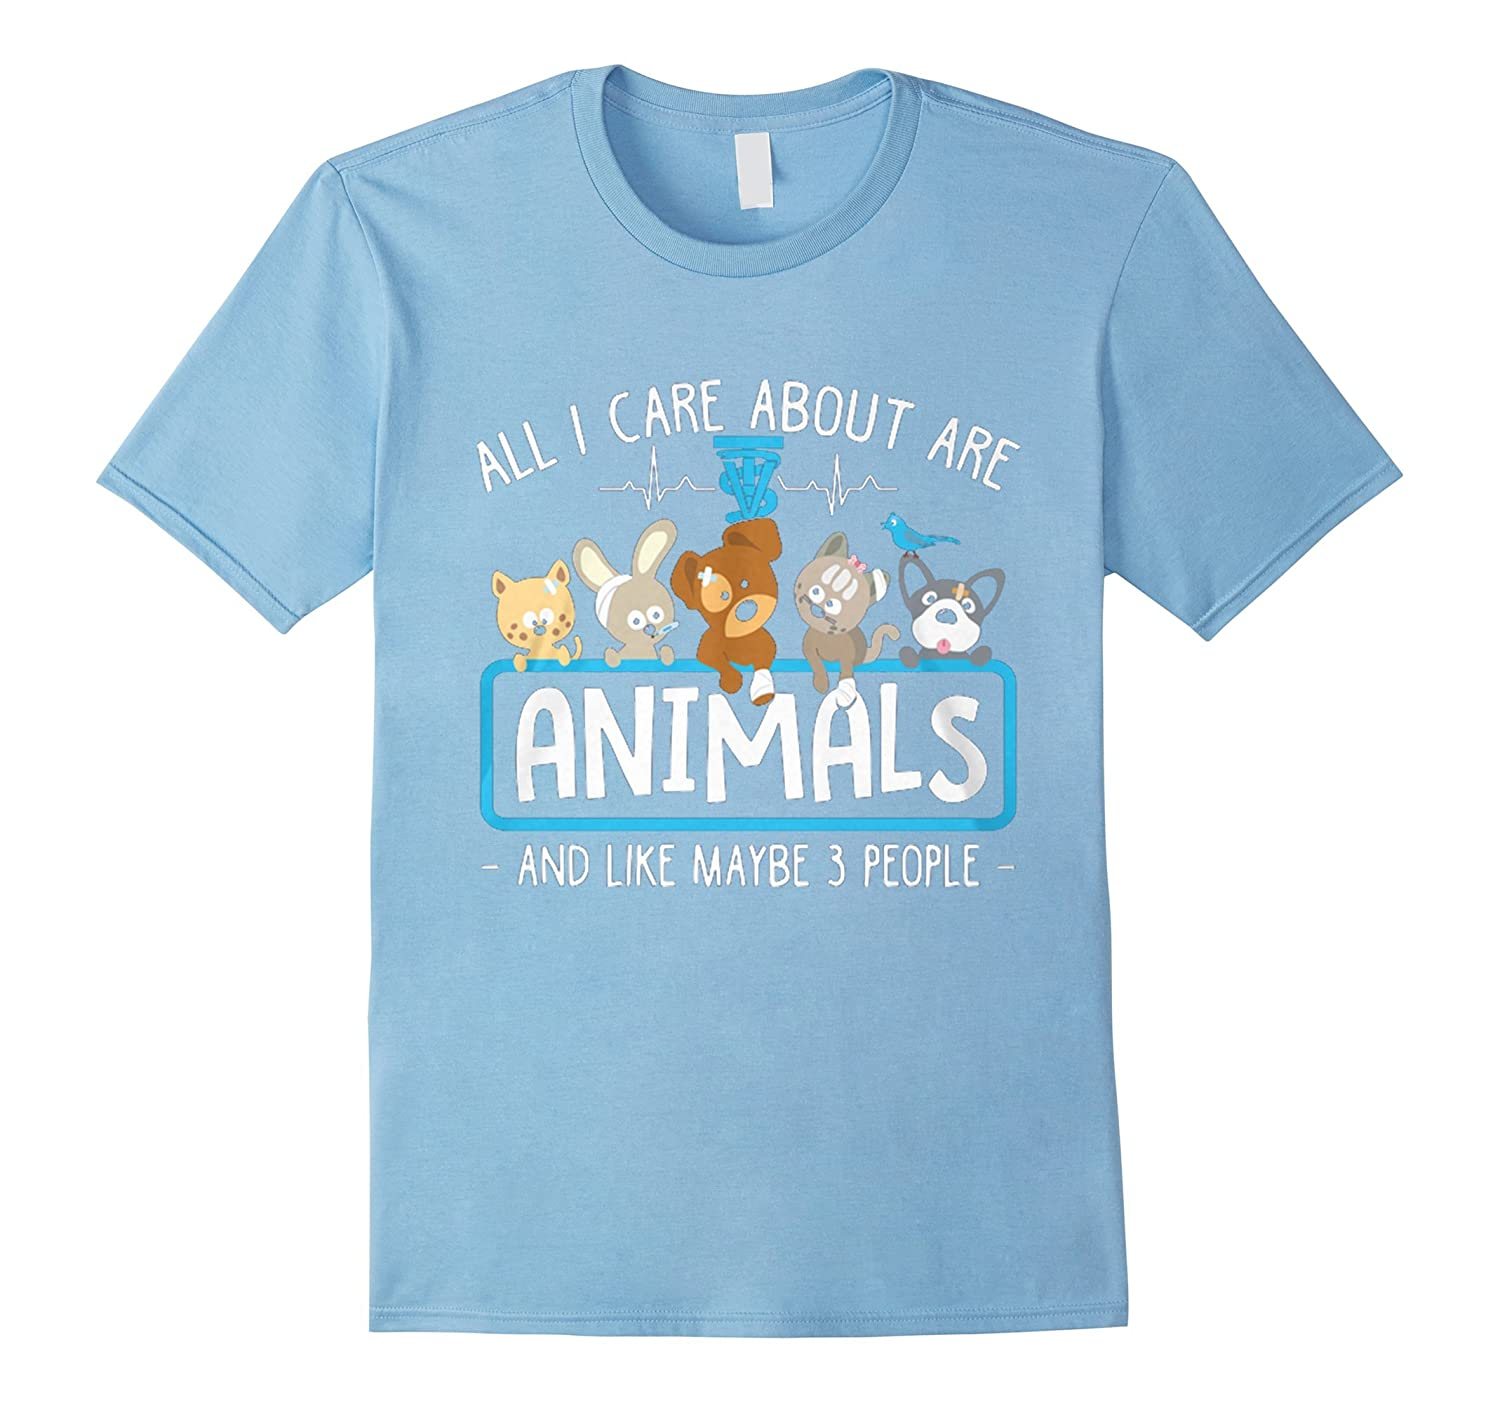 All I care about are animals and maybe like 3 people shirt-Art